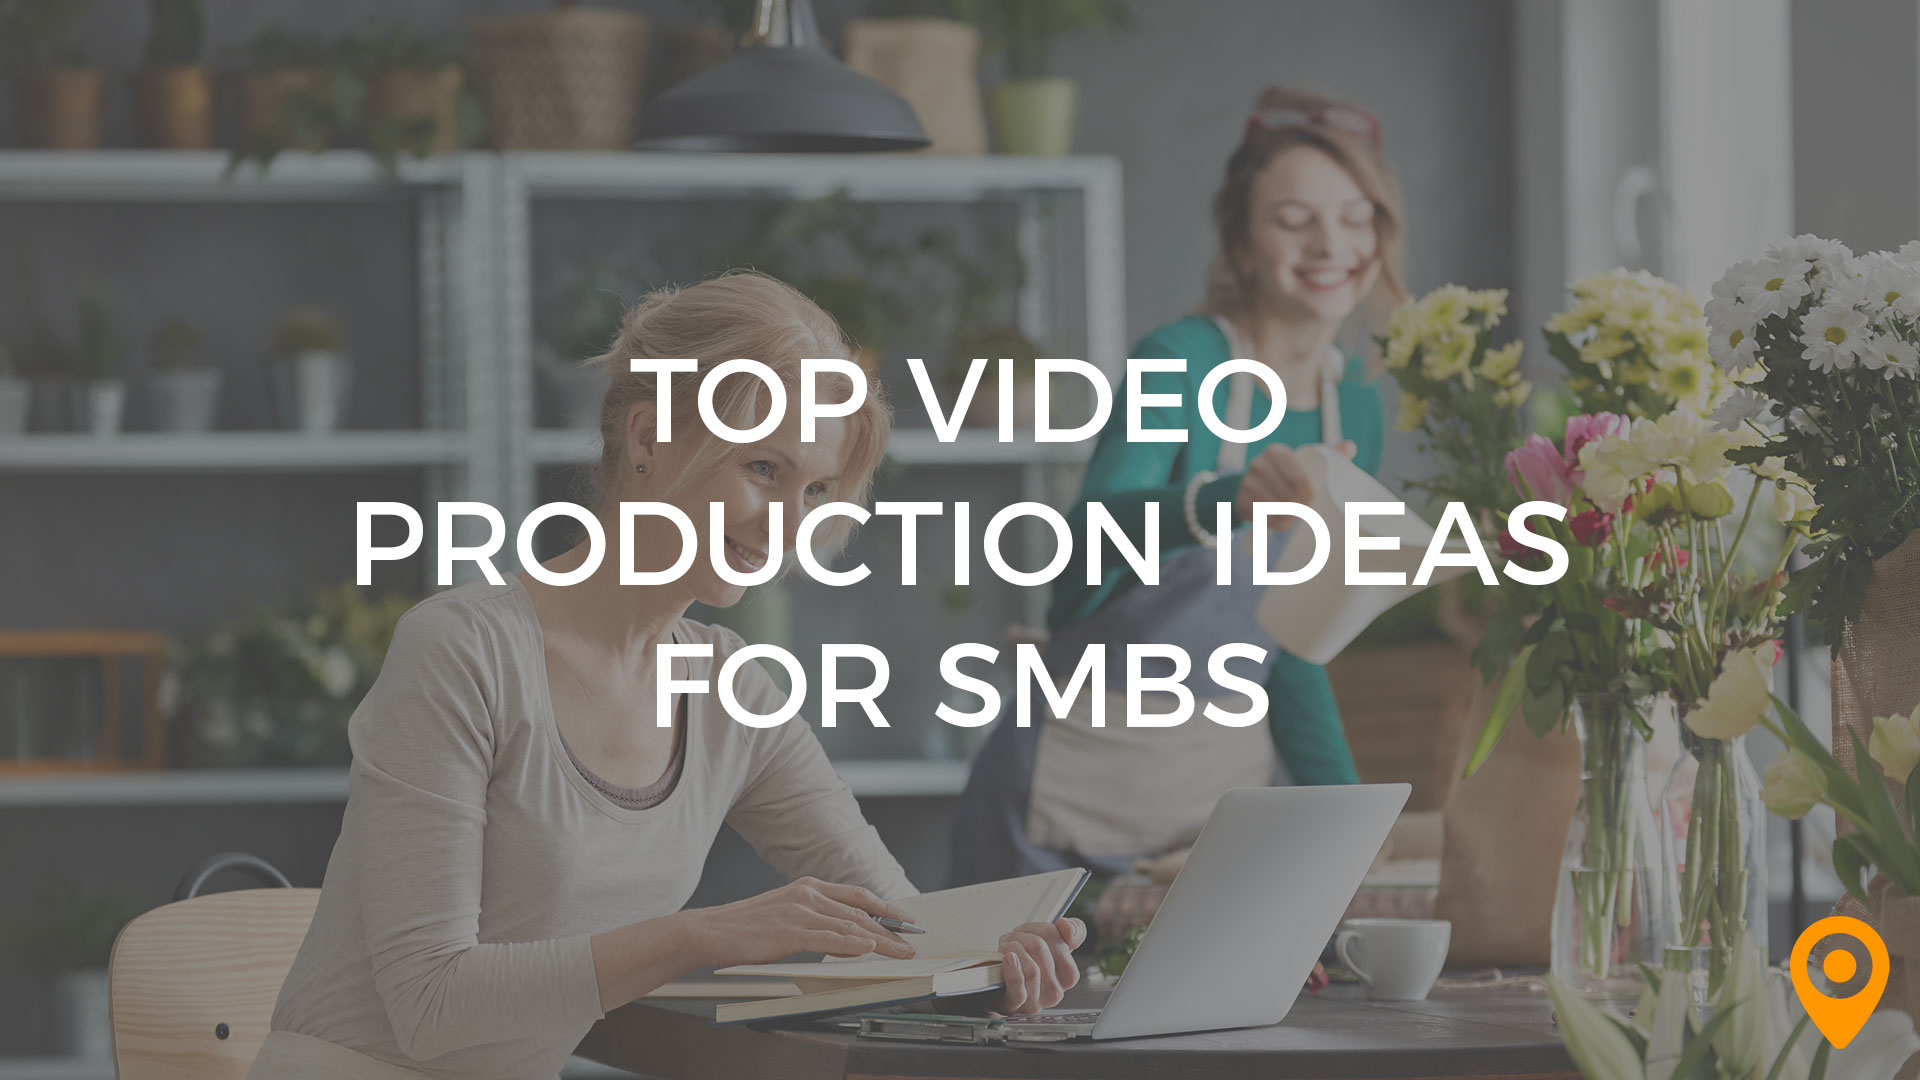 Top Video Production Ideas for SMBs